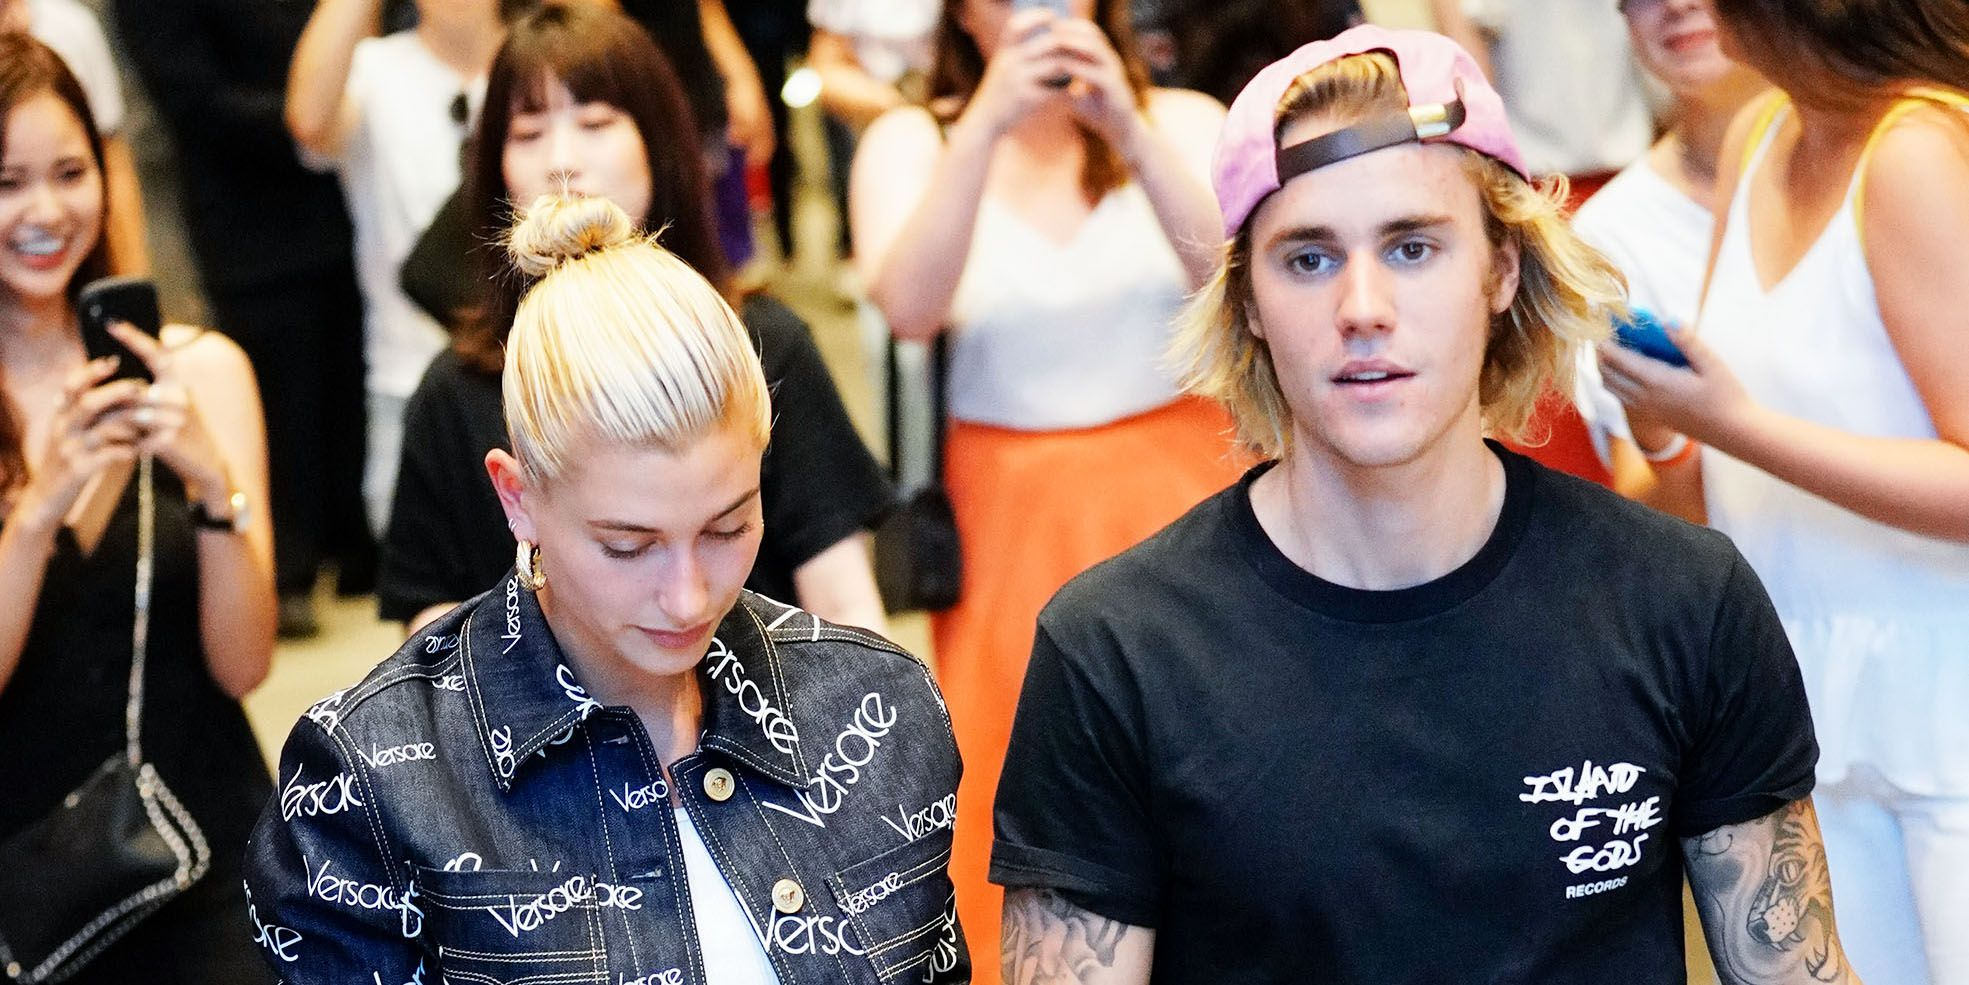 Who is justin bieber dating now 2020 nail